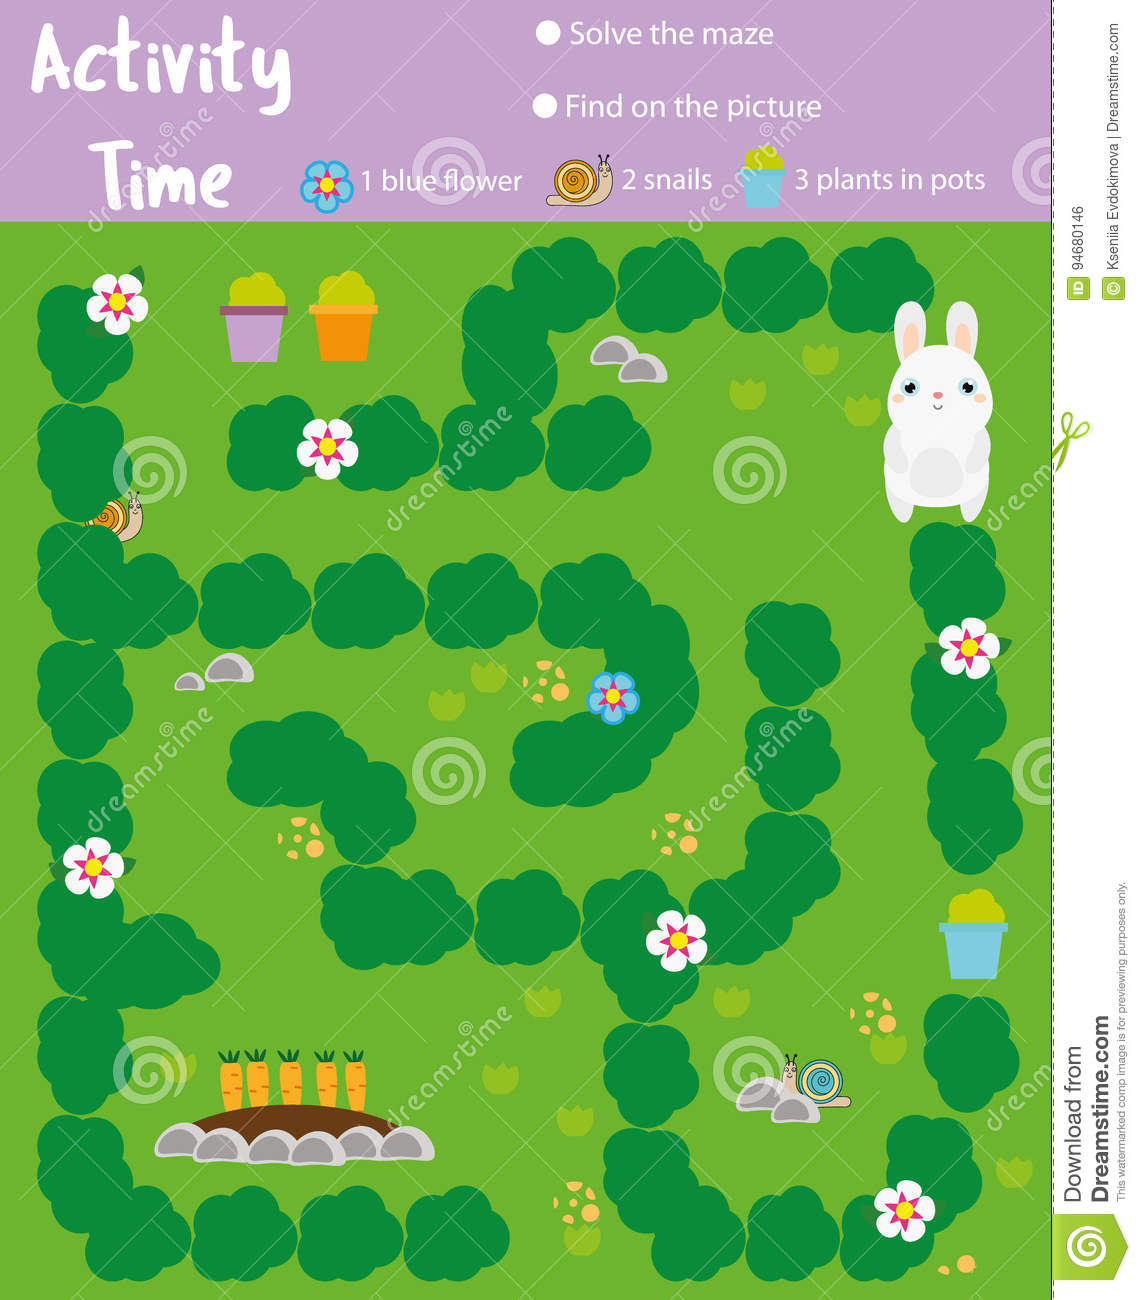 Activity Page For Kids Educational Game Maze And Find